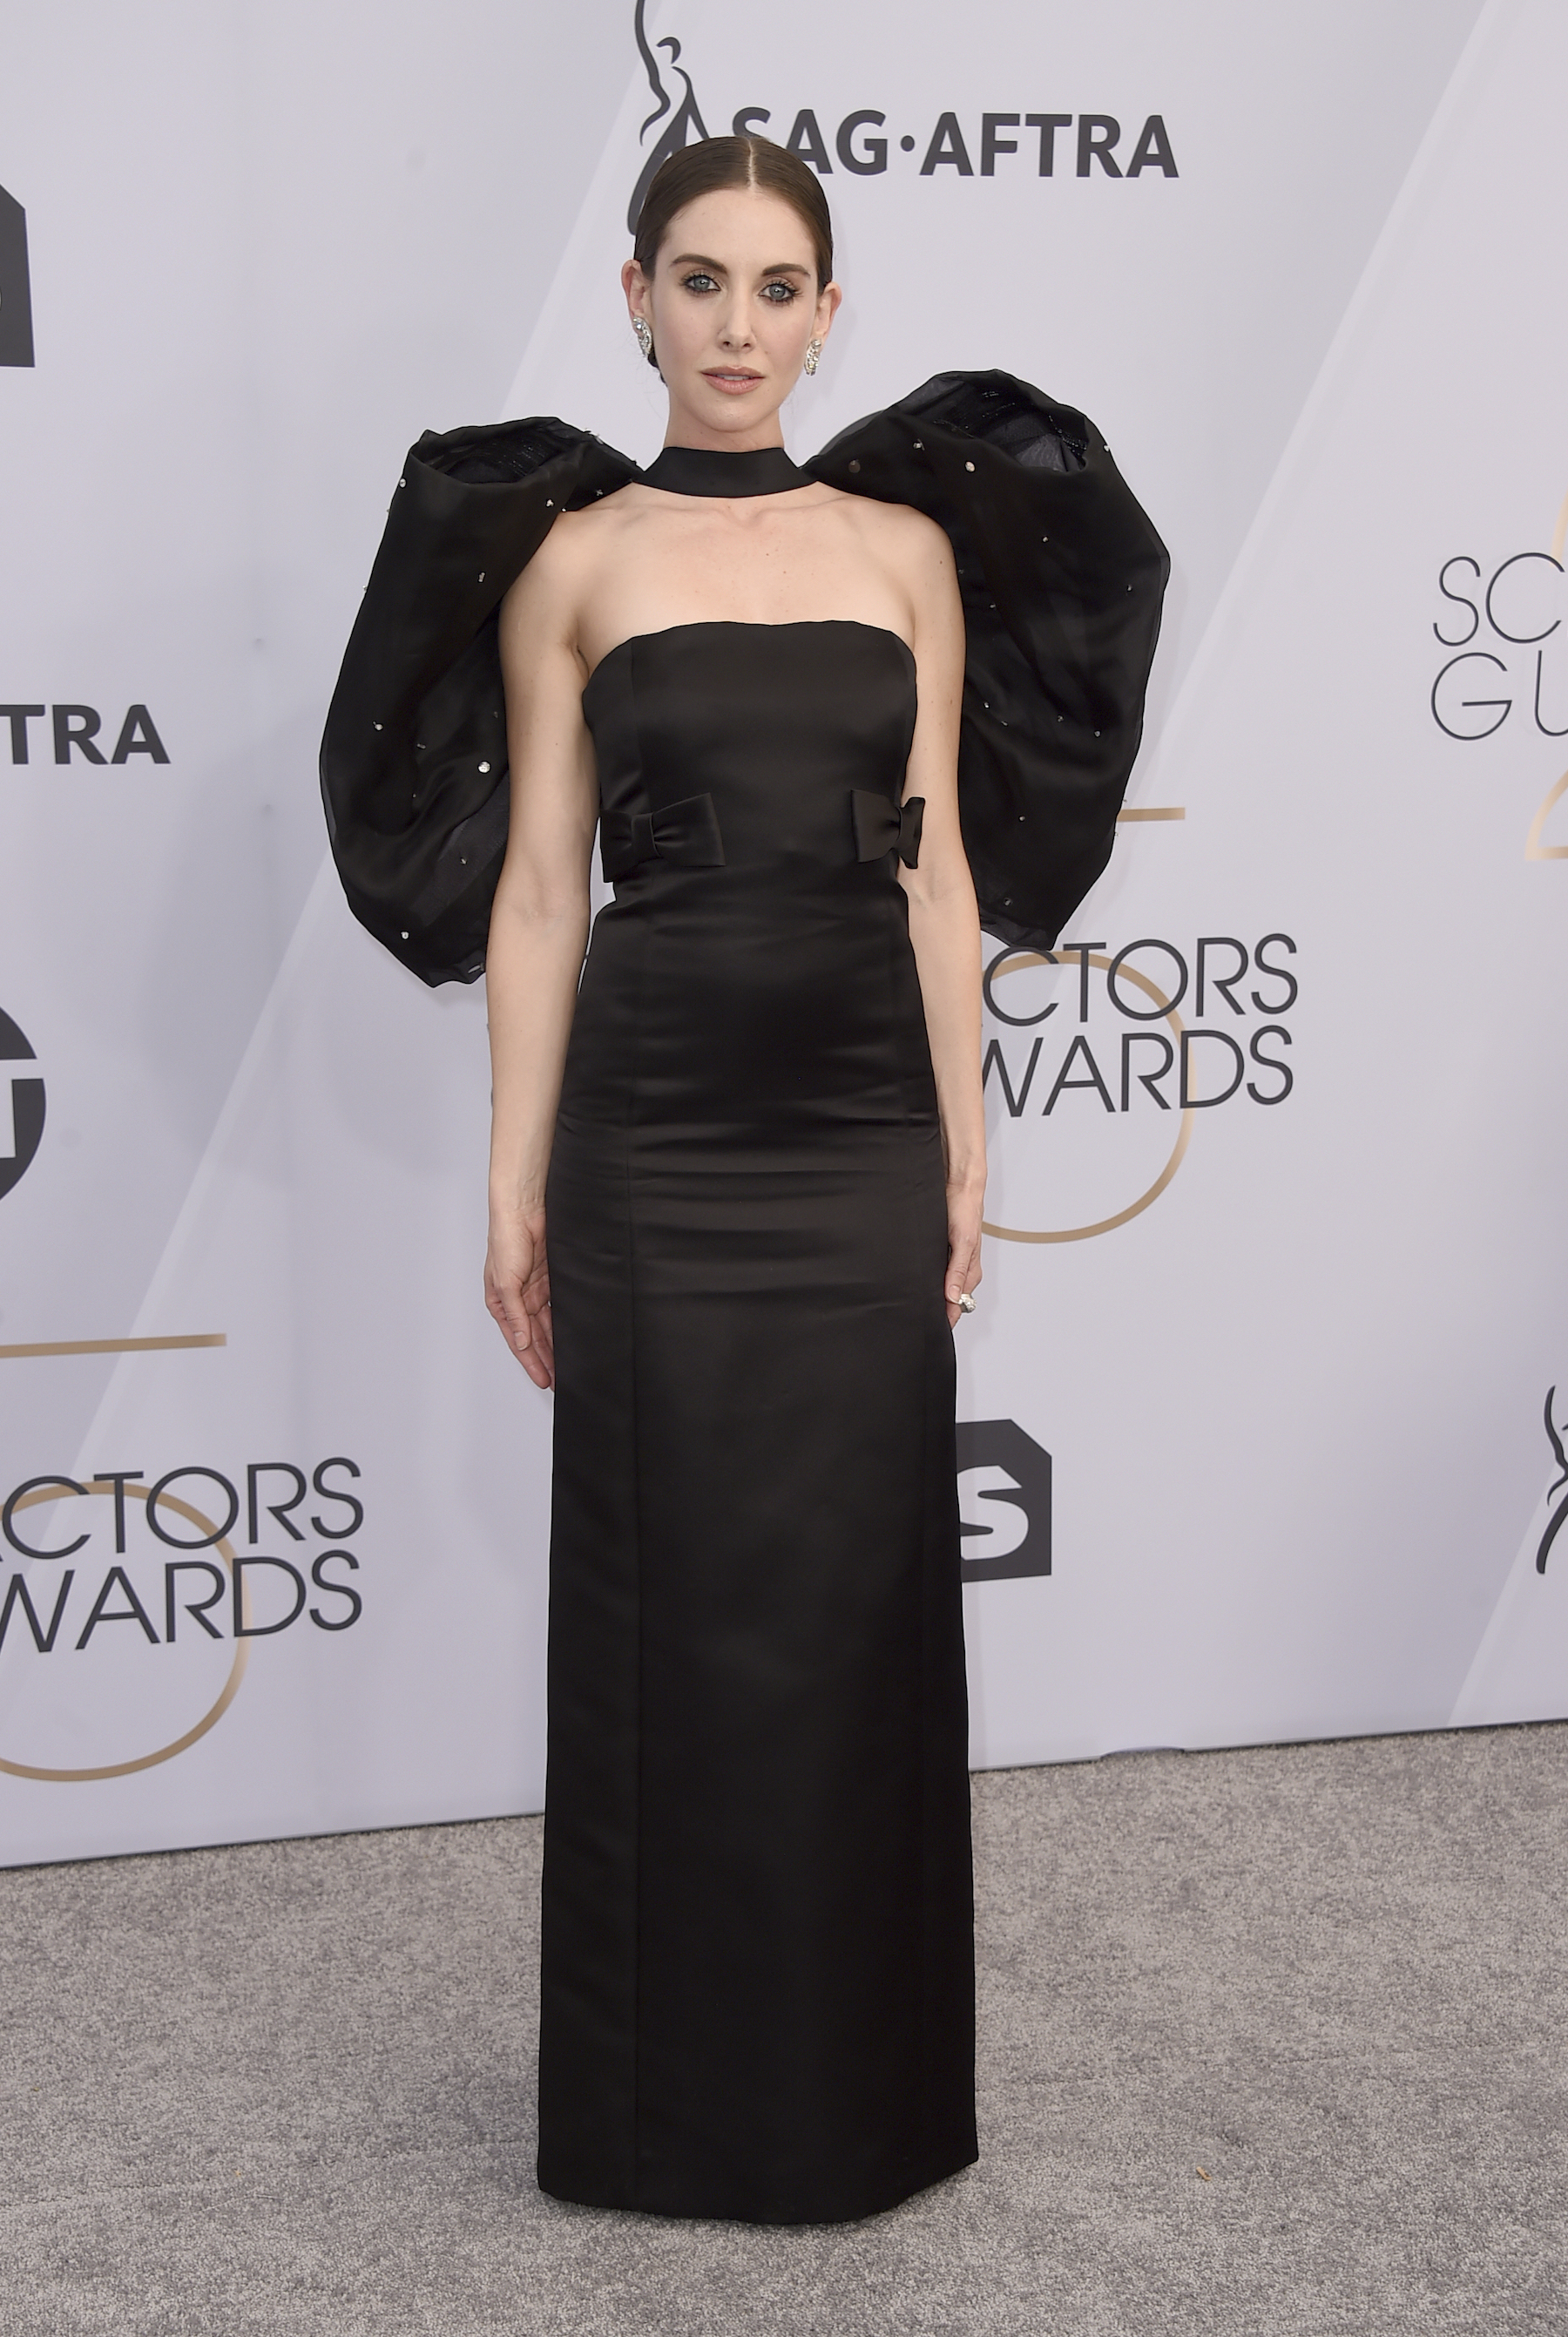 <div class='meta'><div class='origin-logo' data-origin='AP'></div><span class='caption-text' data-credit='Jordan Strauss/Invision/AP'>Alison Brie arrives at the 25th annual Screen Actors Guild Awards at the Shrine Auditorium & Expo Hall on Sunday, Jan. 27, 2019, in Los Angeles.</span></div>